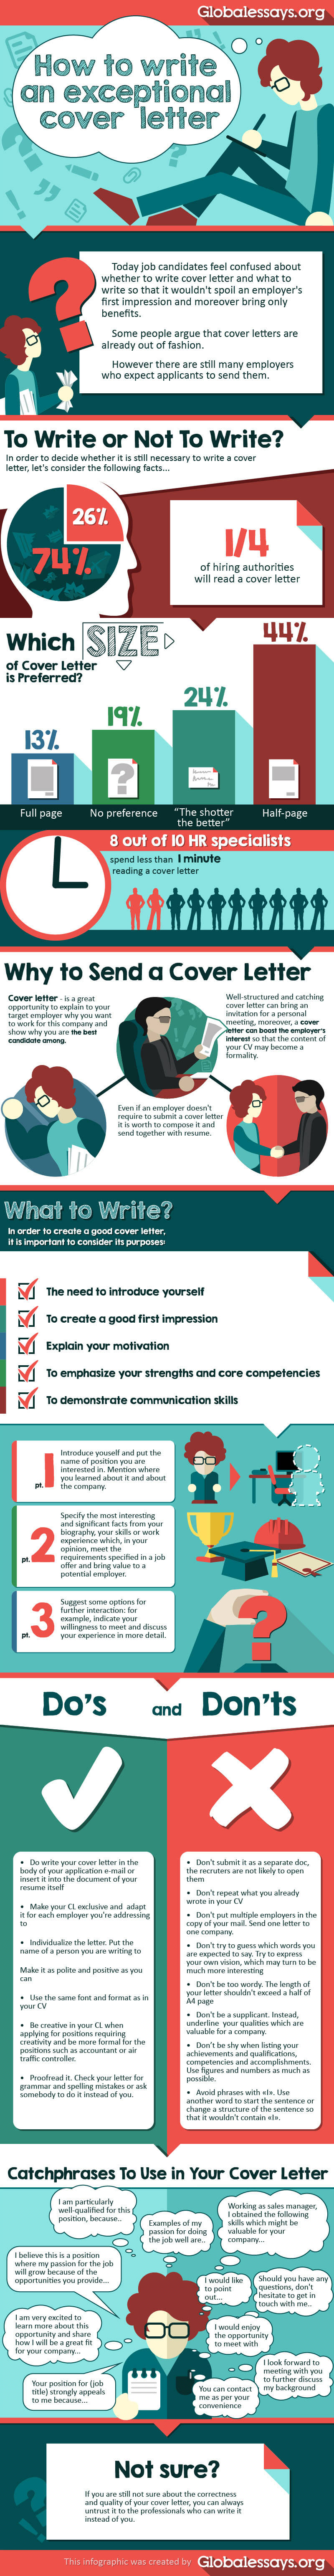 How To Write An Exceptional Cover Letter InfographicThe Savvy